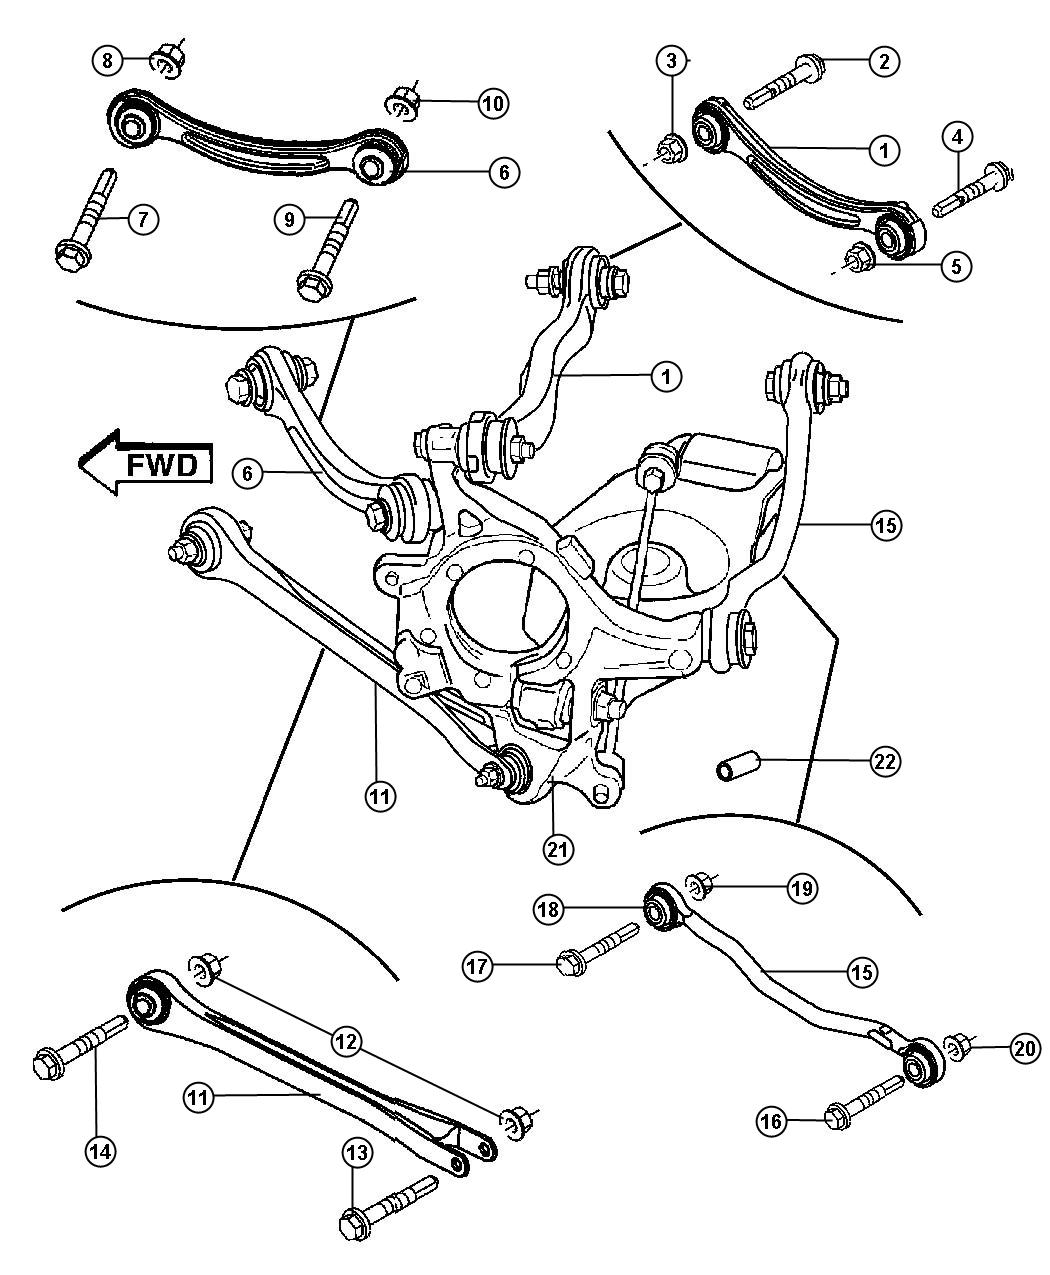 2008 Dodge Charger Rear Suspension Diagram